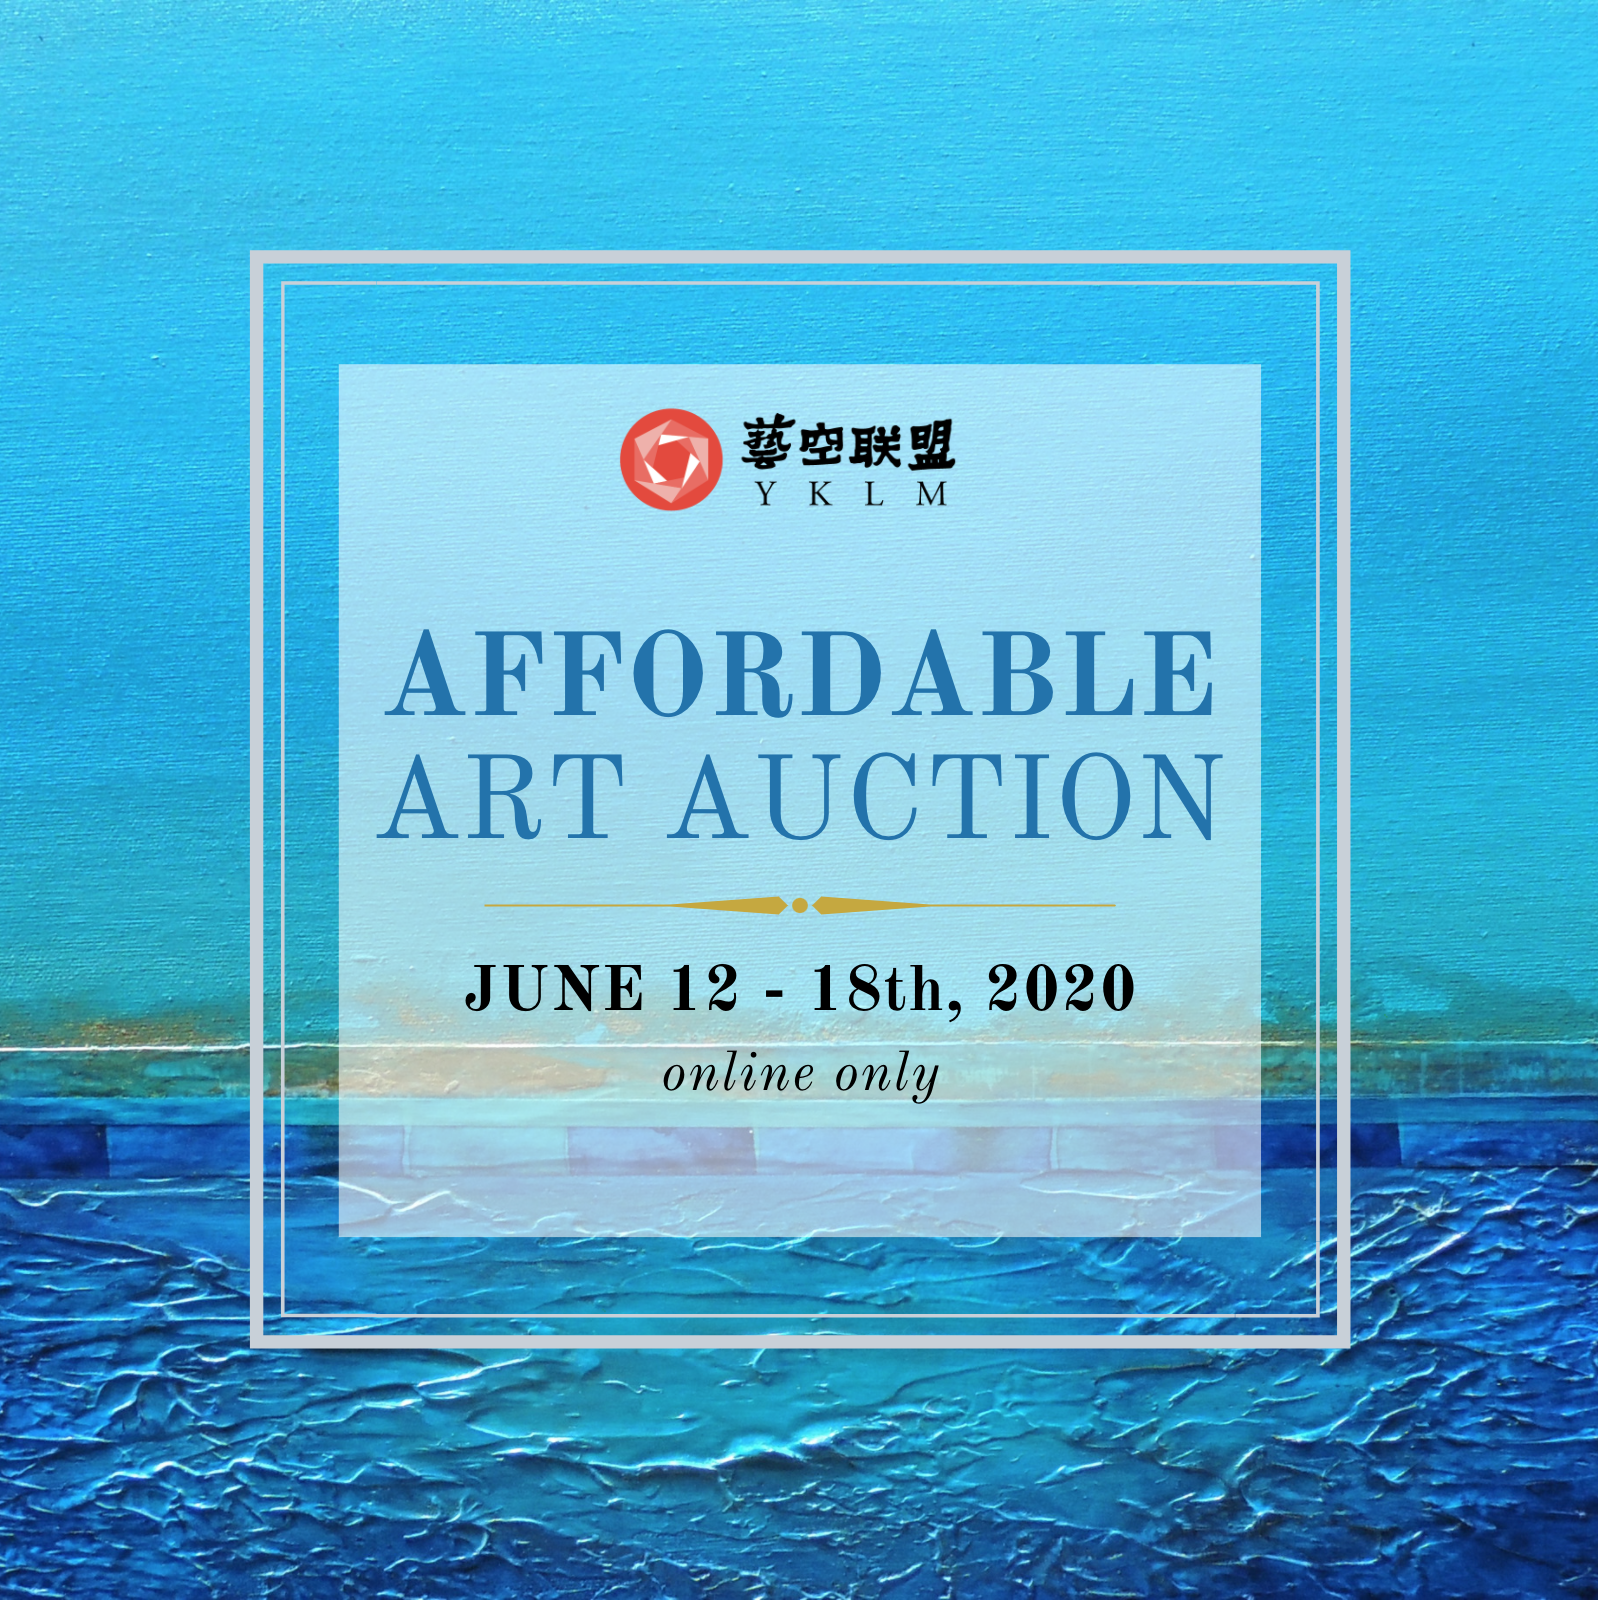 YKLM Affordable Art Auction